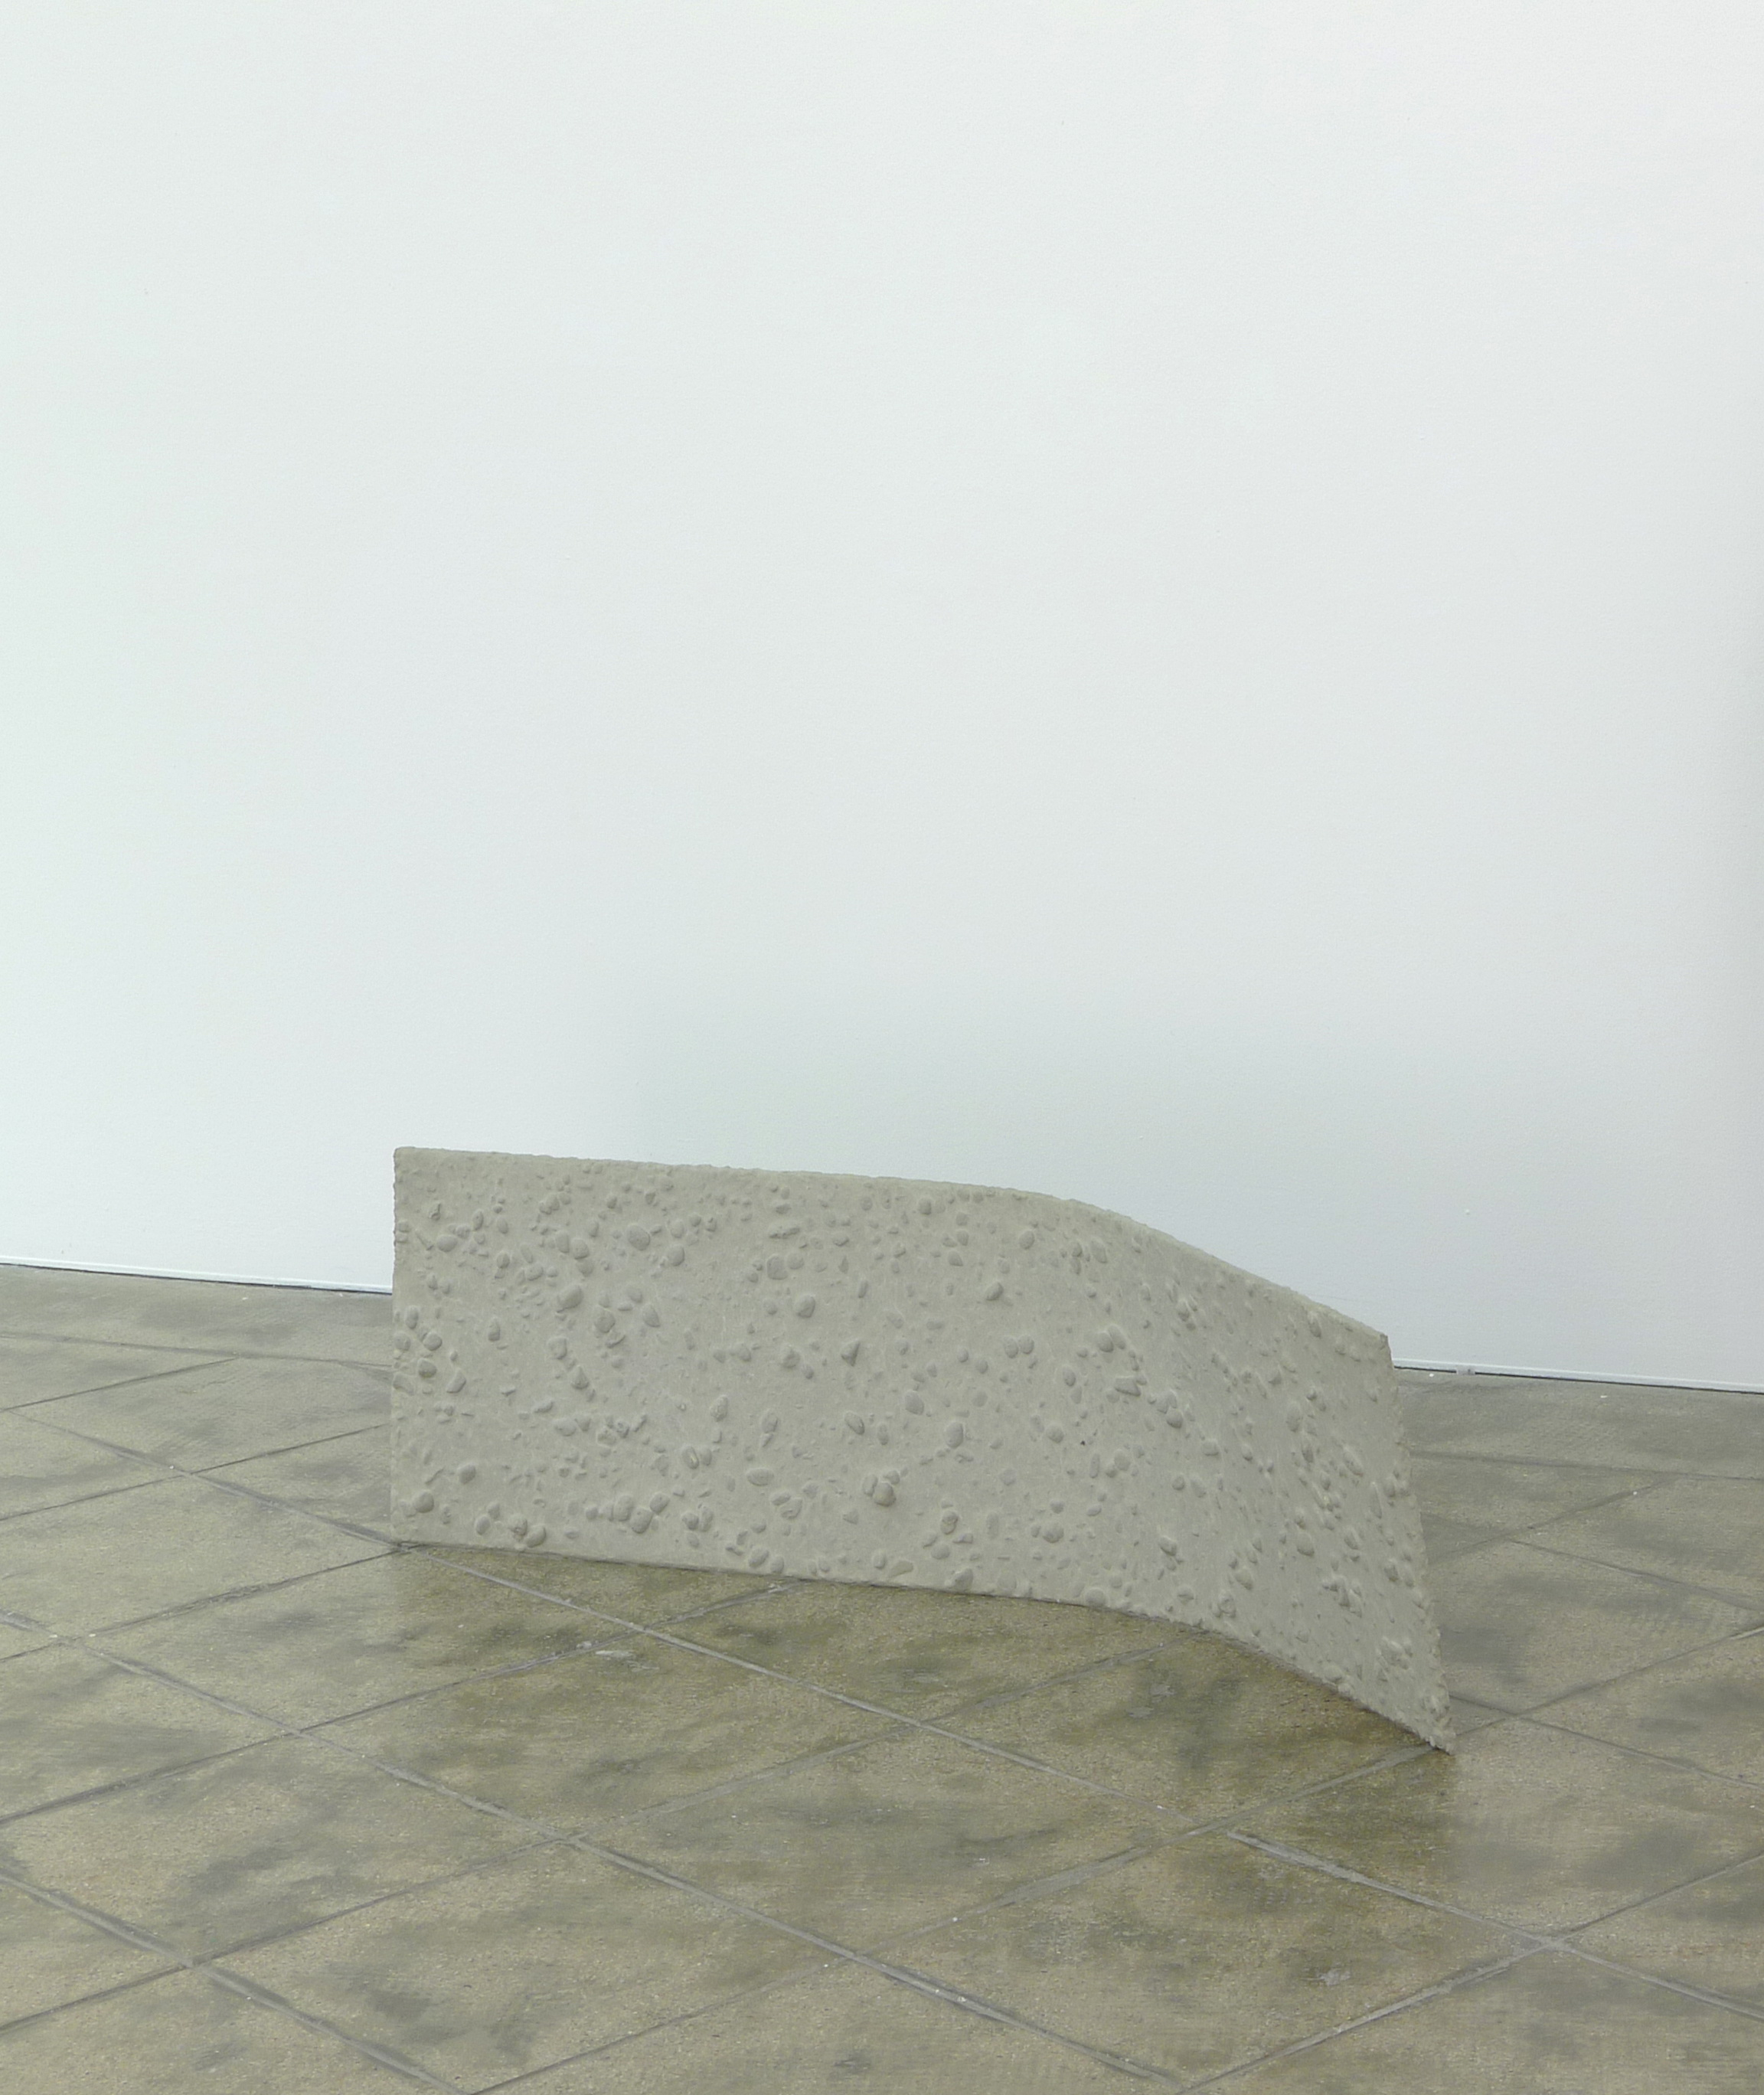 Bent inversion (lehend), 2012 |  | ProjecteSD